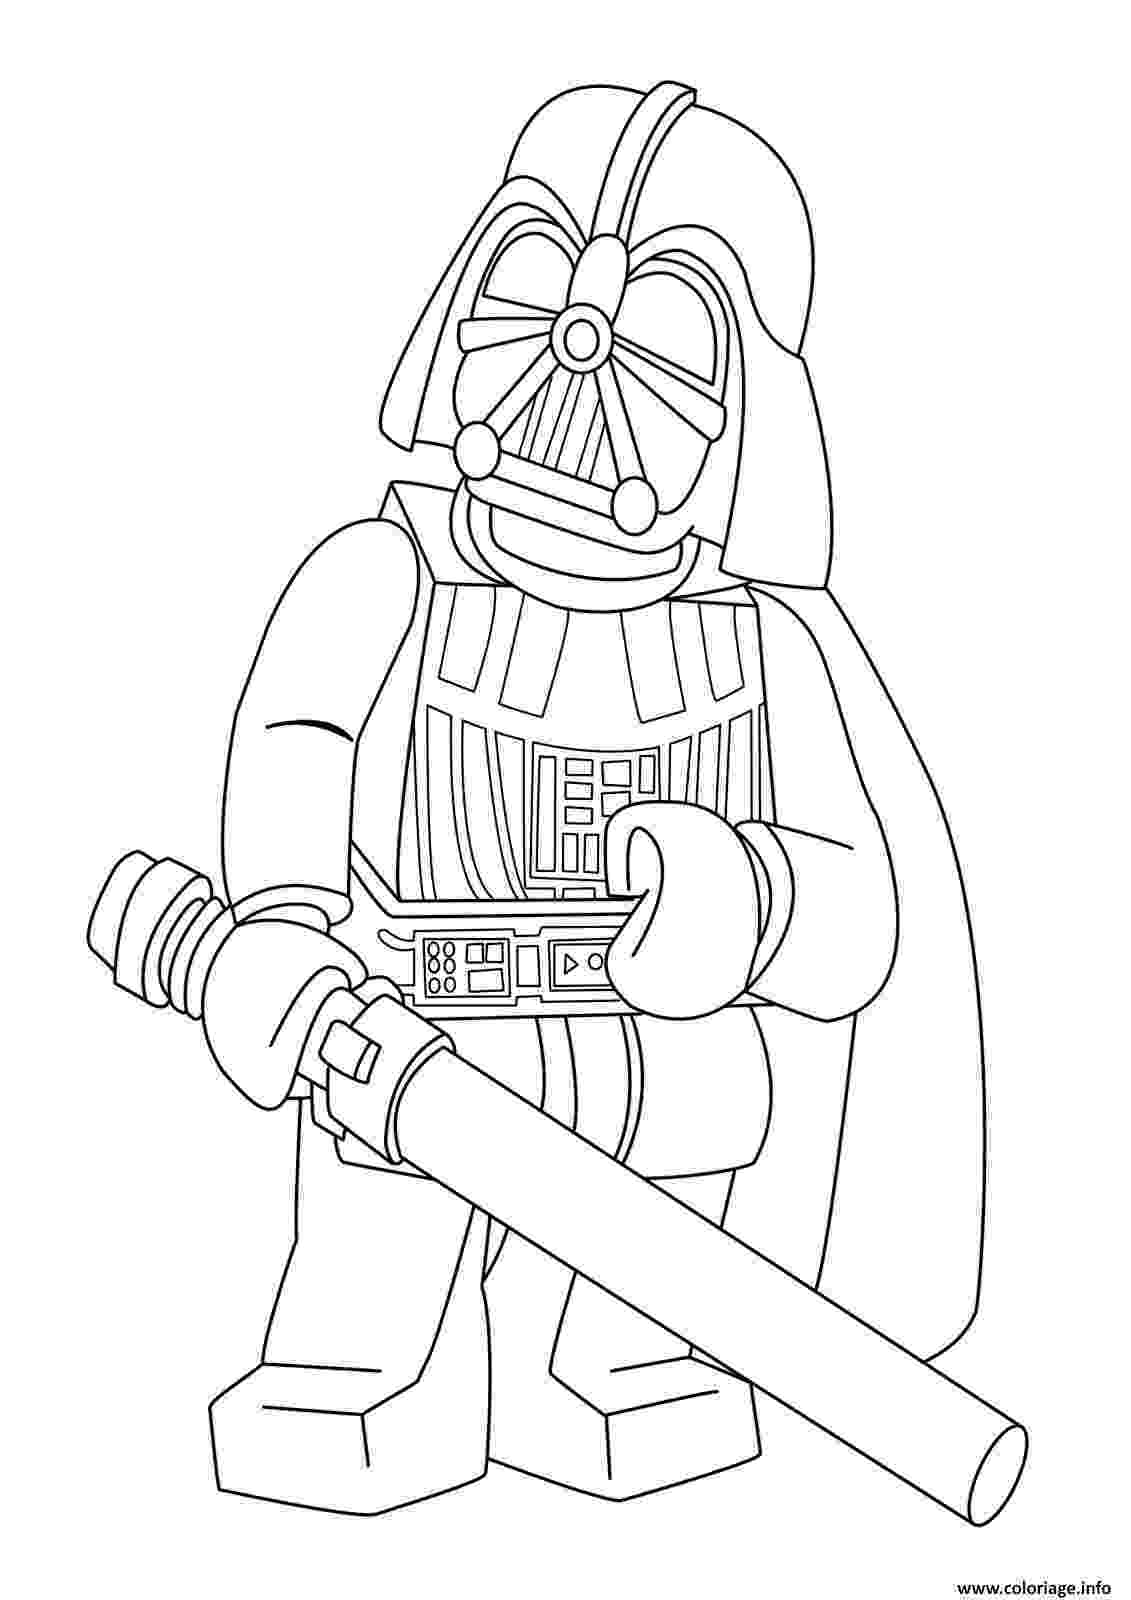 coloriage lego star wars star wars 174 movies printable coloring pages wars coloriage star lego